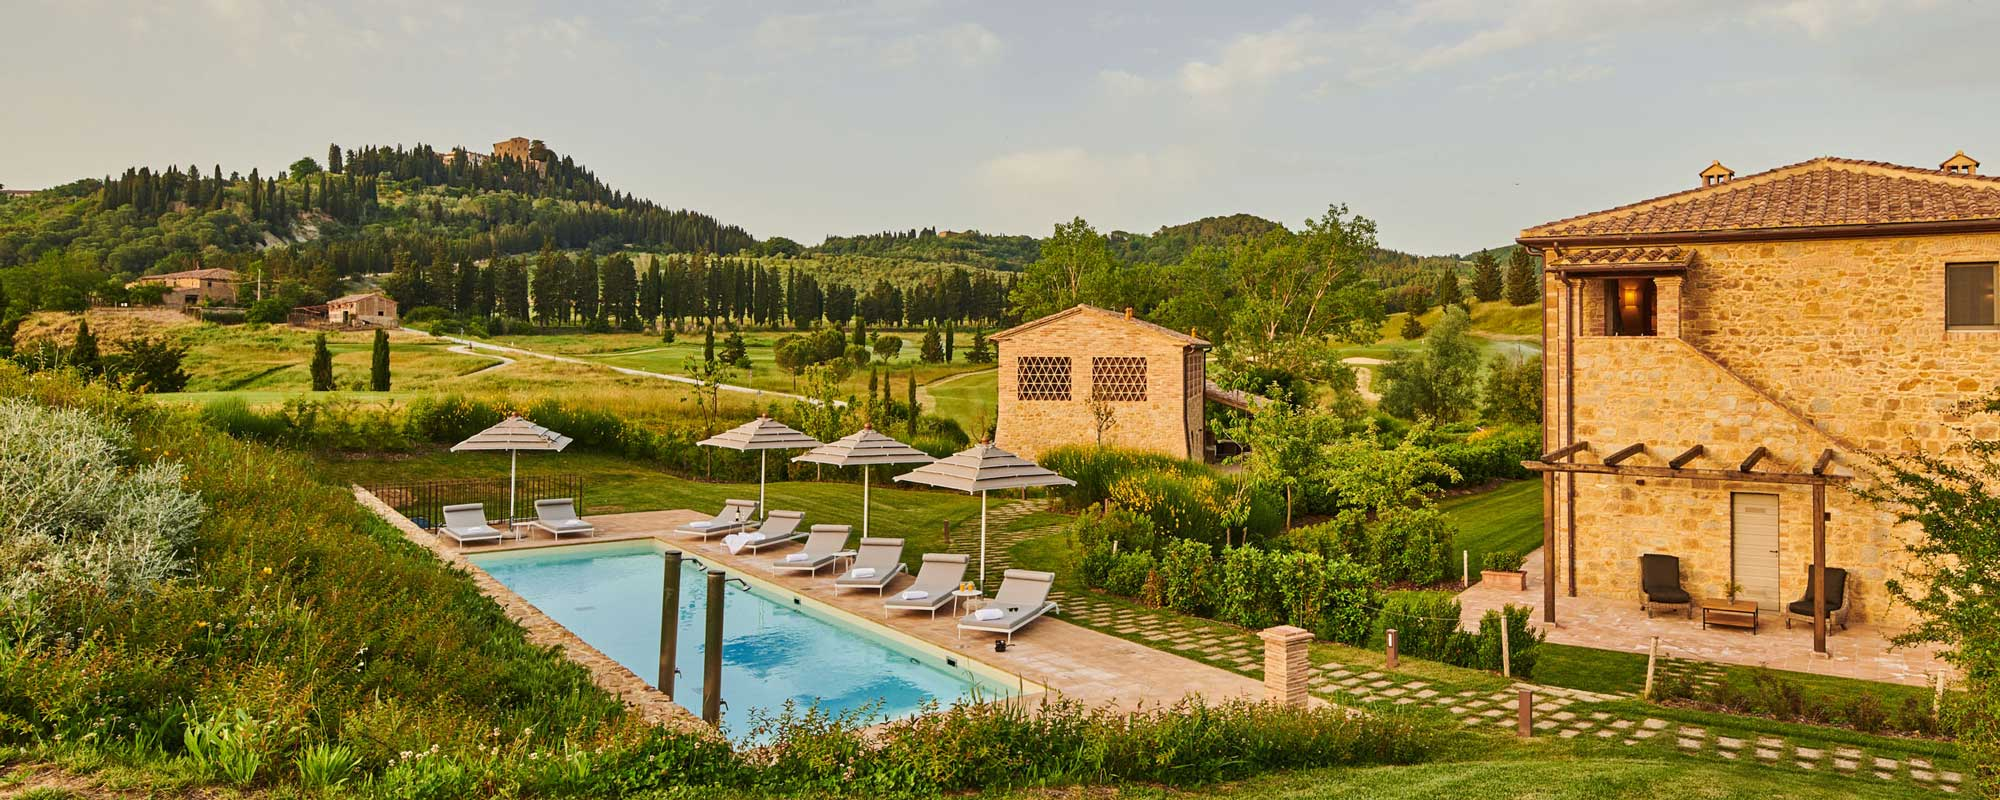 La Spina gives you access to a communal pool with a grand view of the Tuscan Countryside